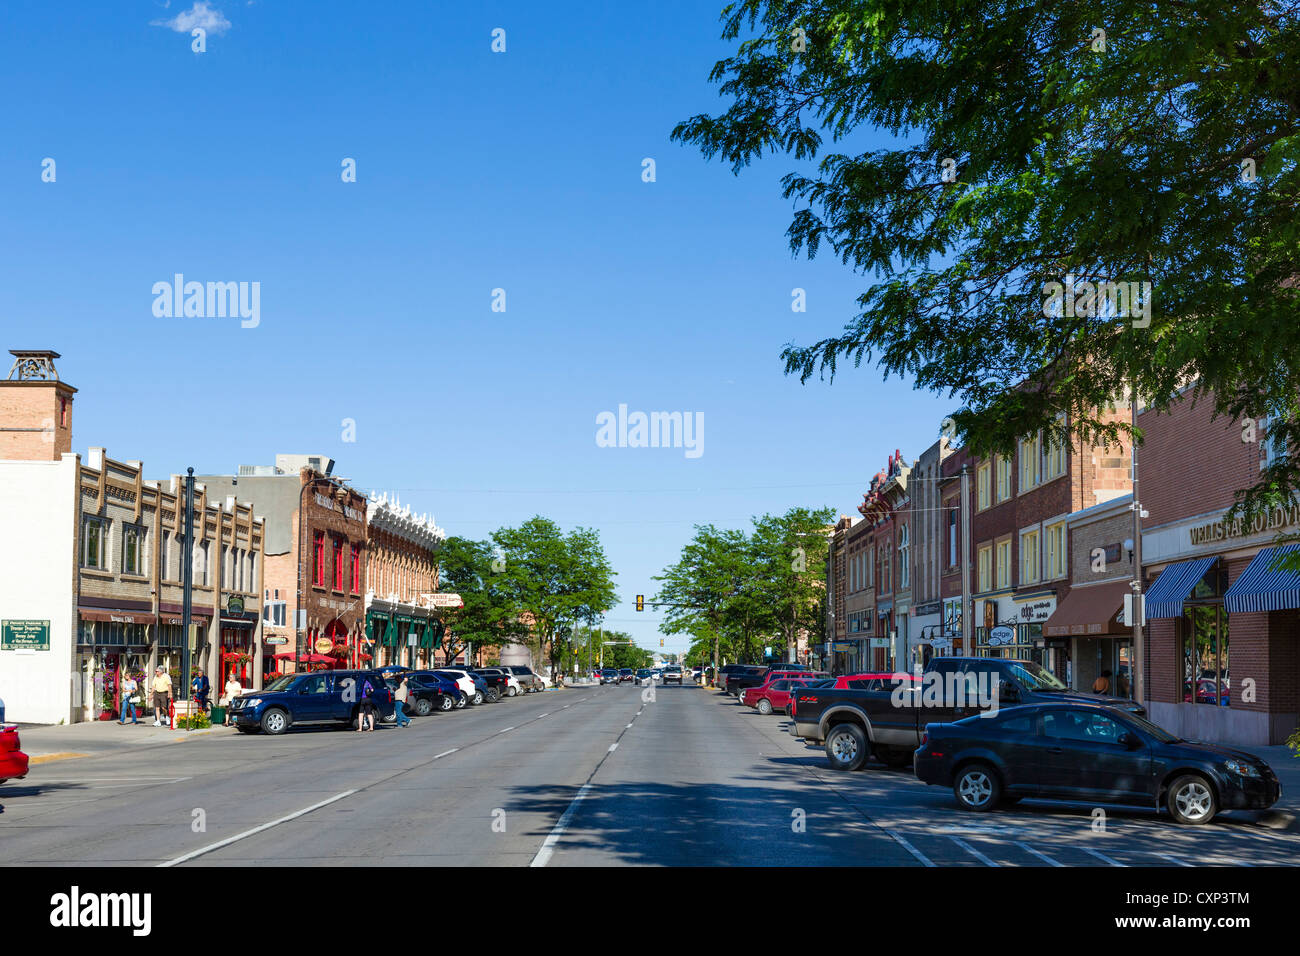 Main Street in downtown Rapid City, South Dakota, USA - Stock Image